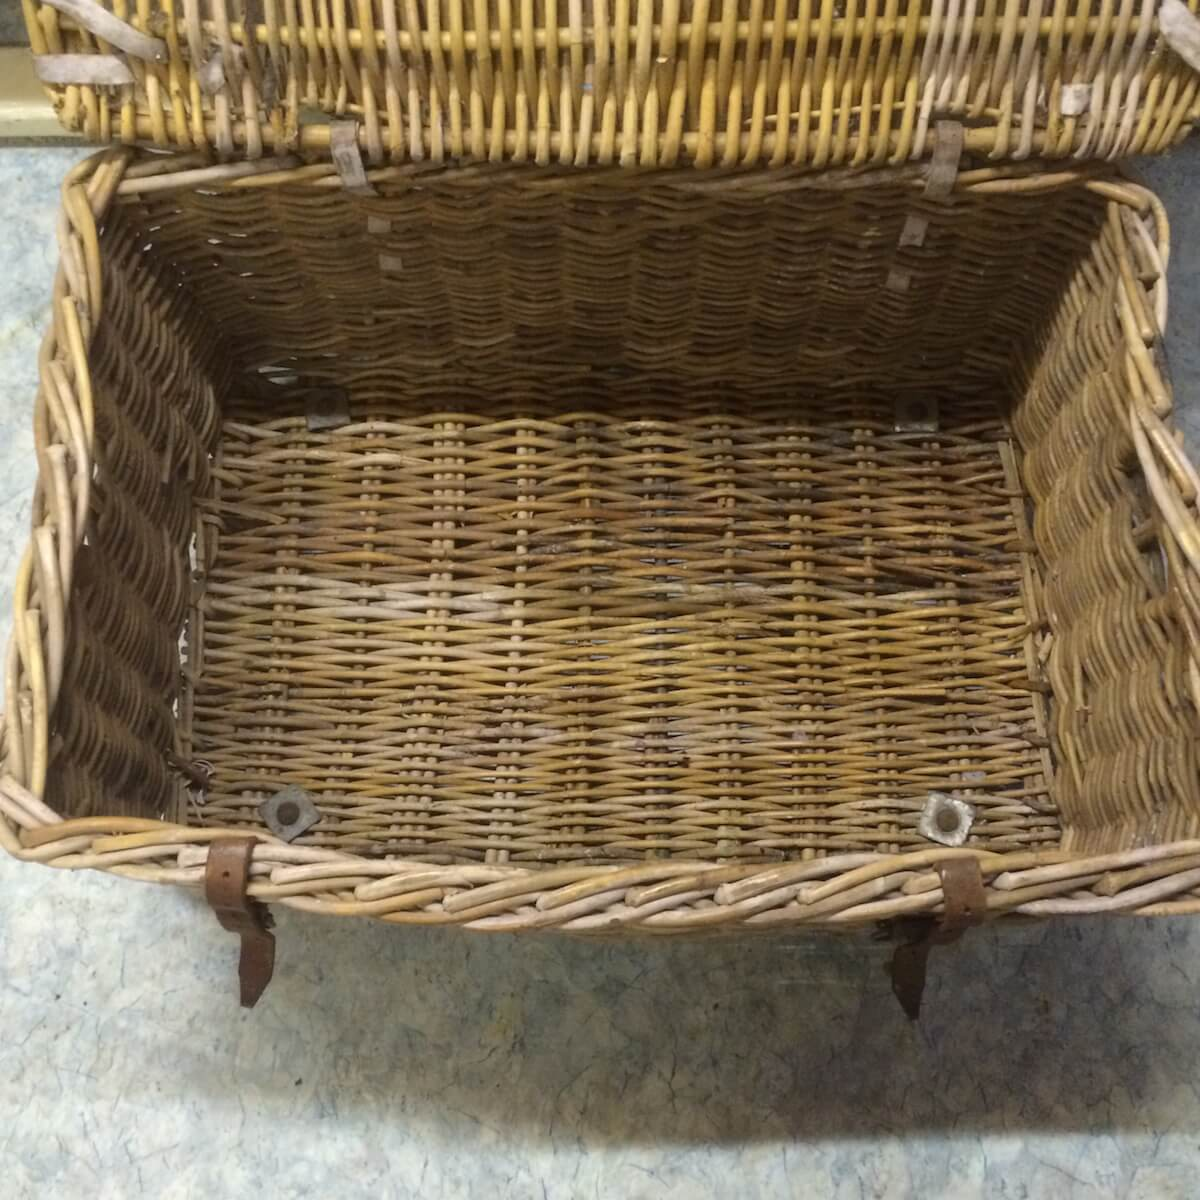 Wicker Laundry Baskets Old Wicker Laundry Basket Vintage Pine Etc Ltd